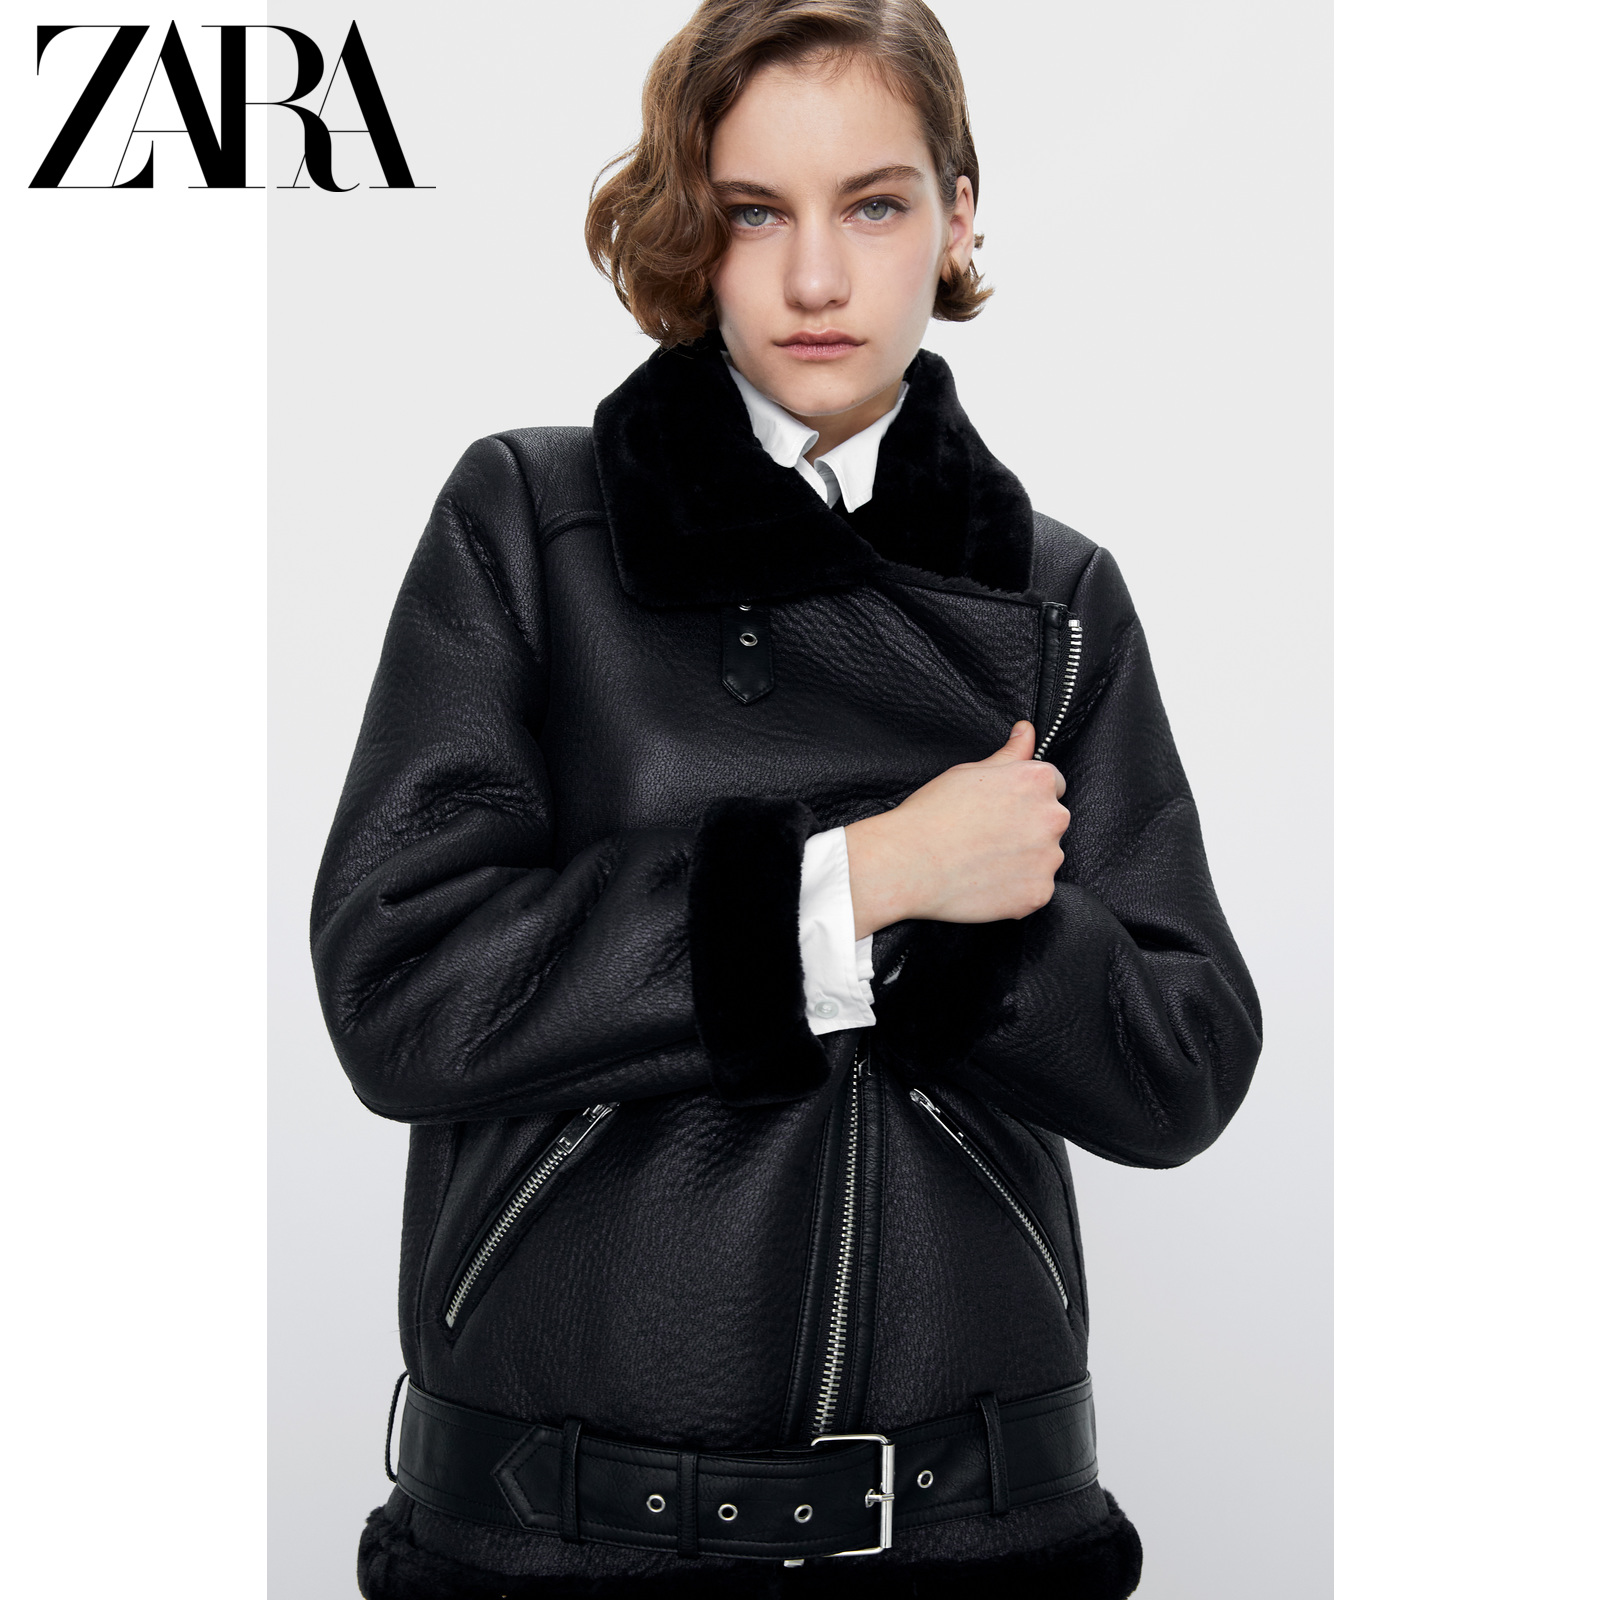 Zara new women's double sided motorcycle jacket 02969253800